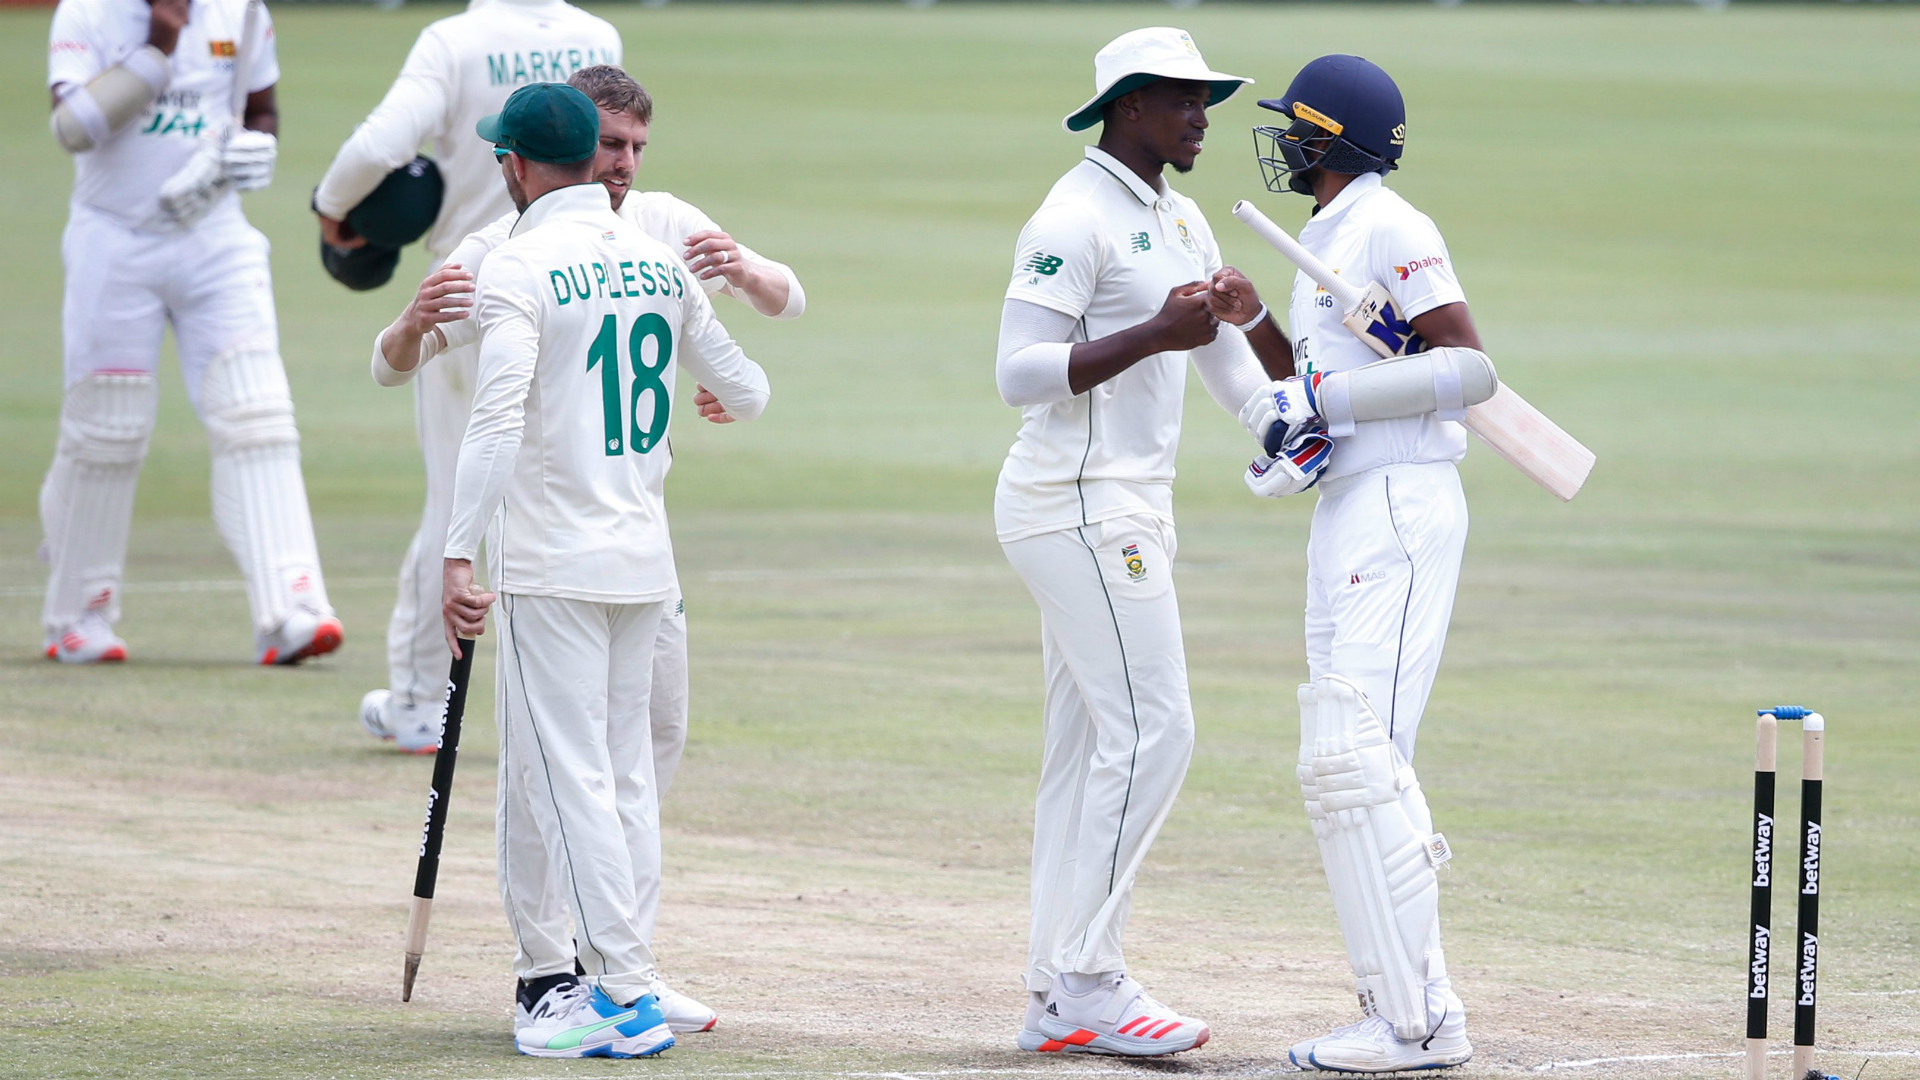 South Africa roar to innings triumph in Centurion opener